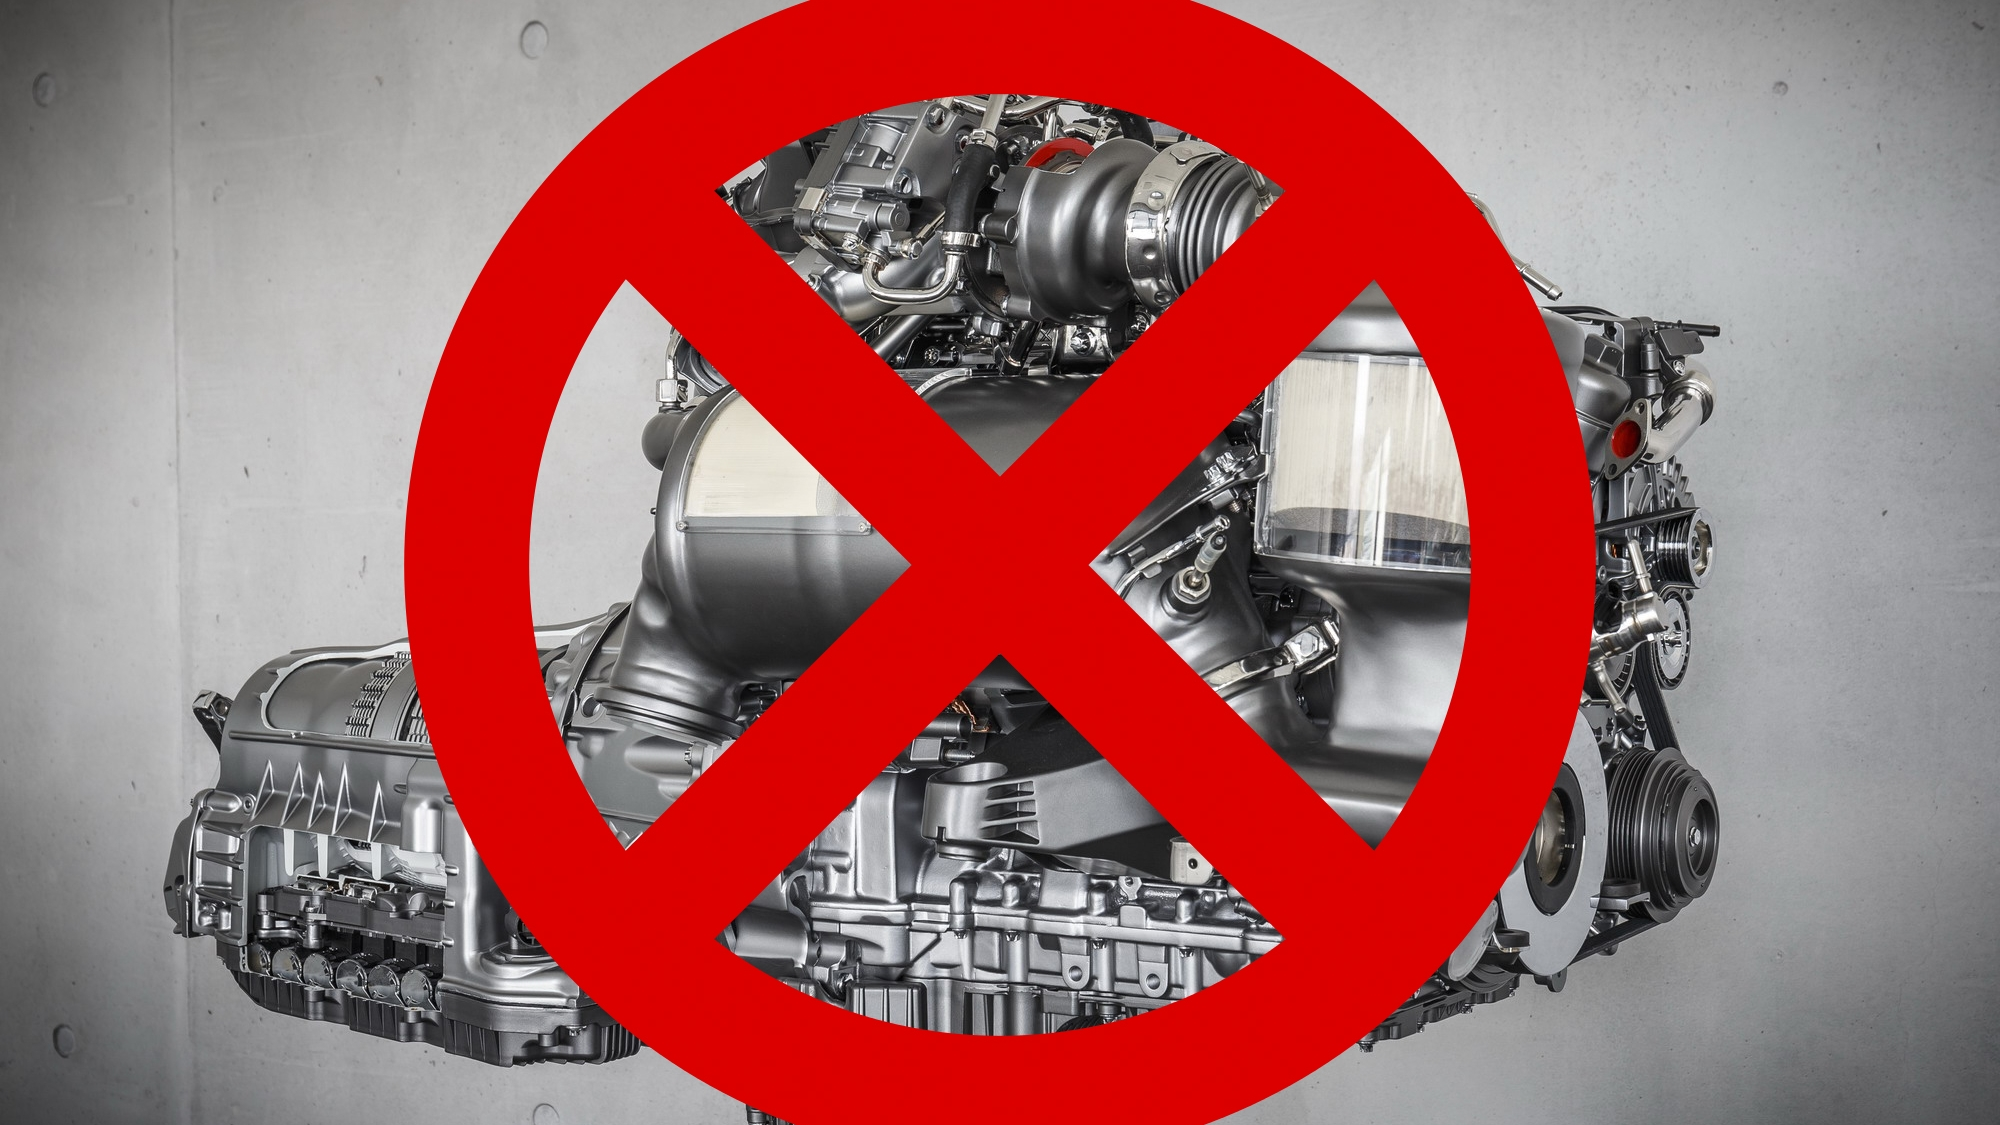 788dbb3c3d Germany Looks To Ban Internal Combustion Engines By 2030